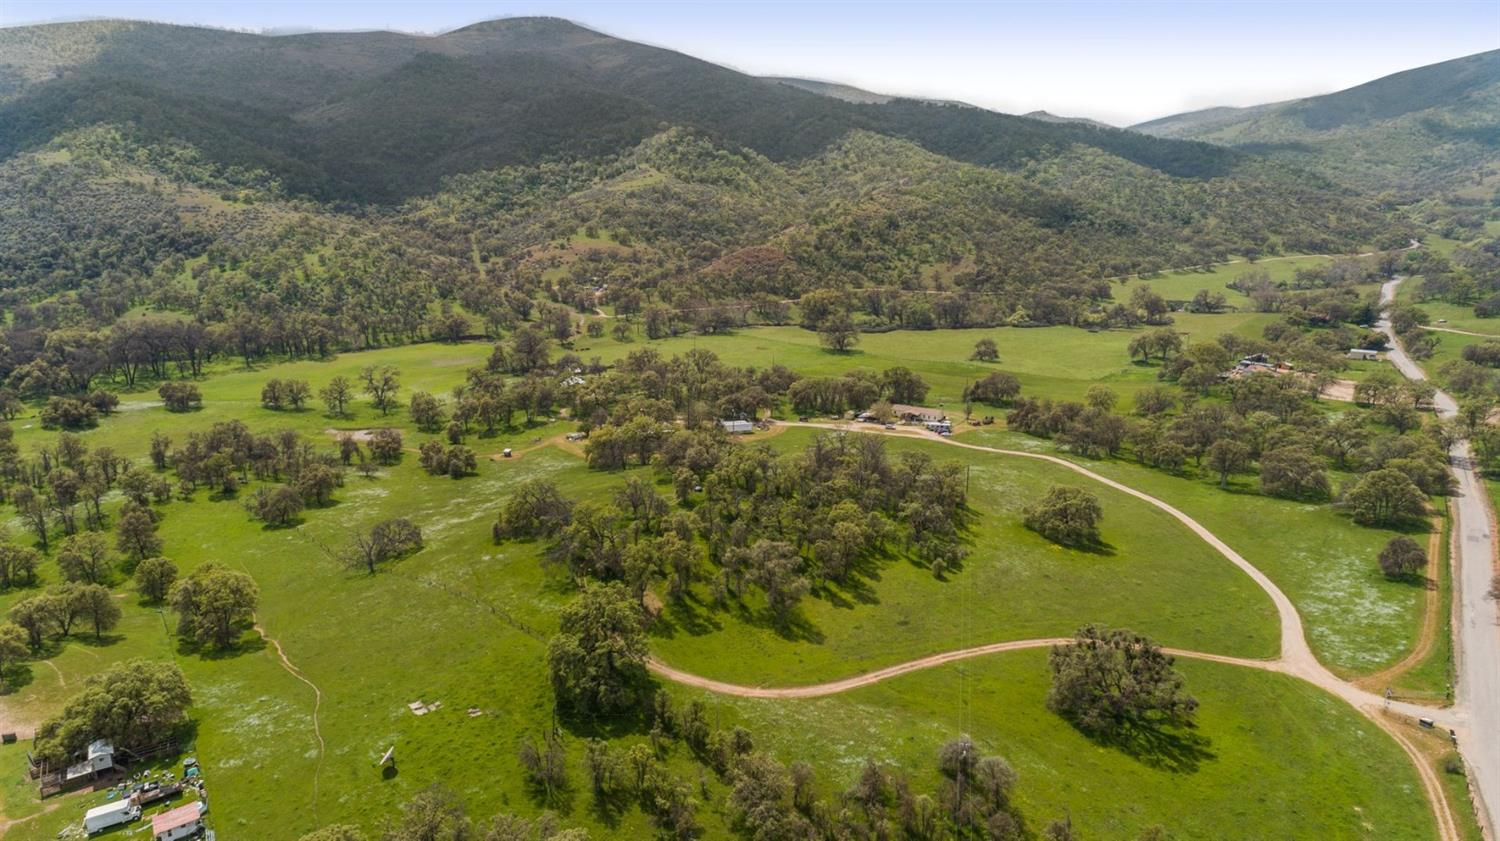 Three parcels of amazing ranch land totaling 274.35 acres, with two homes, barns, a 24x48 shop and a seasonal creek, the opportunity to own this type of ranch doesn't come along often!  One home was built in 1968, is 1401 square feet and 3/2, the manufactured home was built in 2008, is 4/2 and 1800 square feet. Two wells, 1 spring, a runoff pond, two barns and a small set of corralls, and about 5 acres of irrigated pasture. Fenced and cross fenced for livestock, the land is breathtaking.